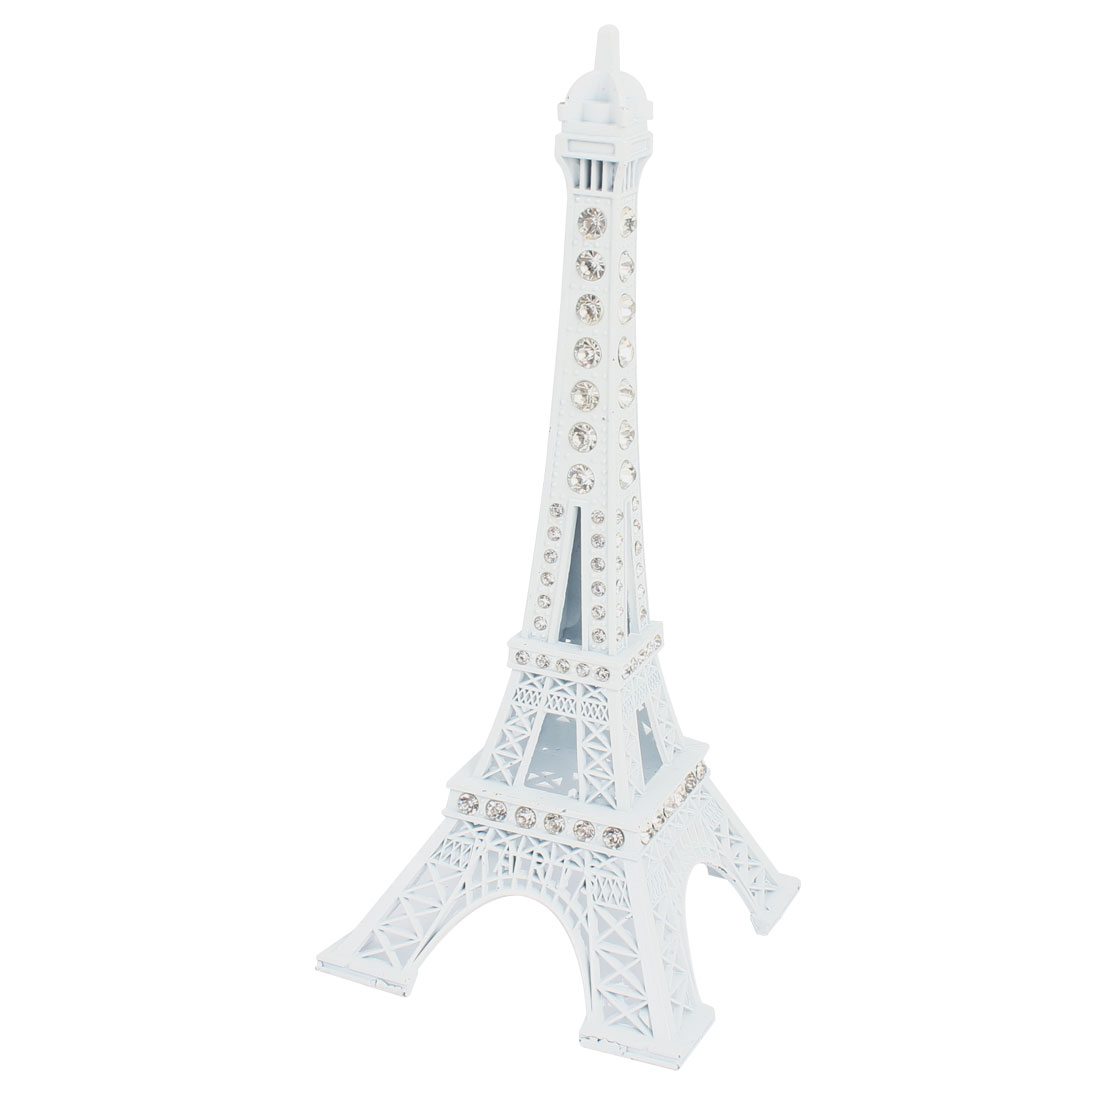 "7.1"" High Rhinestone Accent Paris Eiffel Tower Metal Sculpture Model Desk Decor"